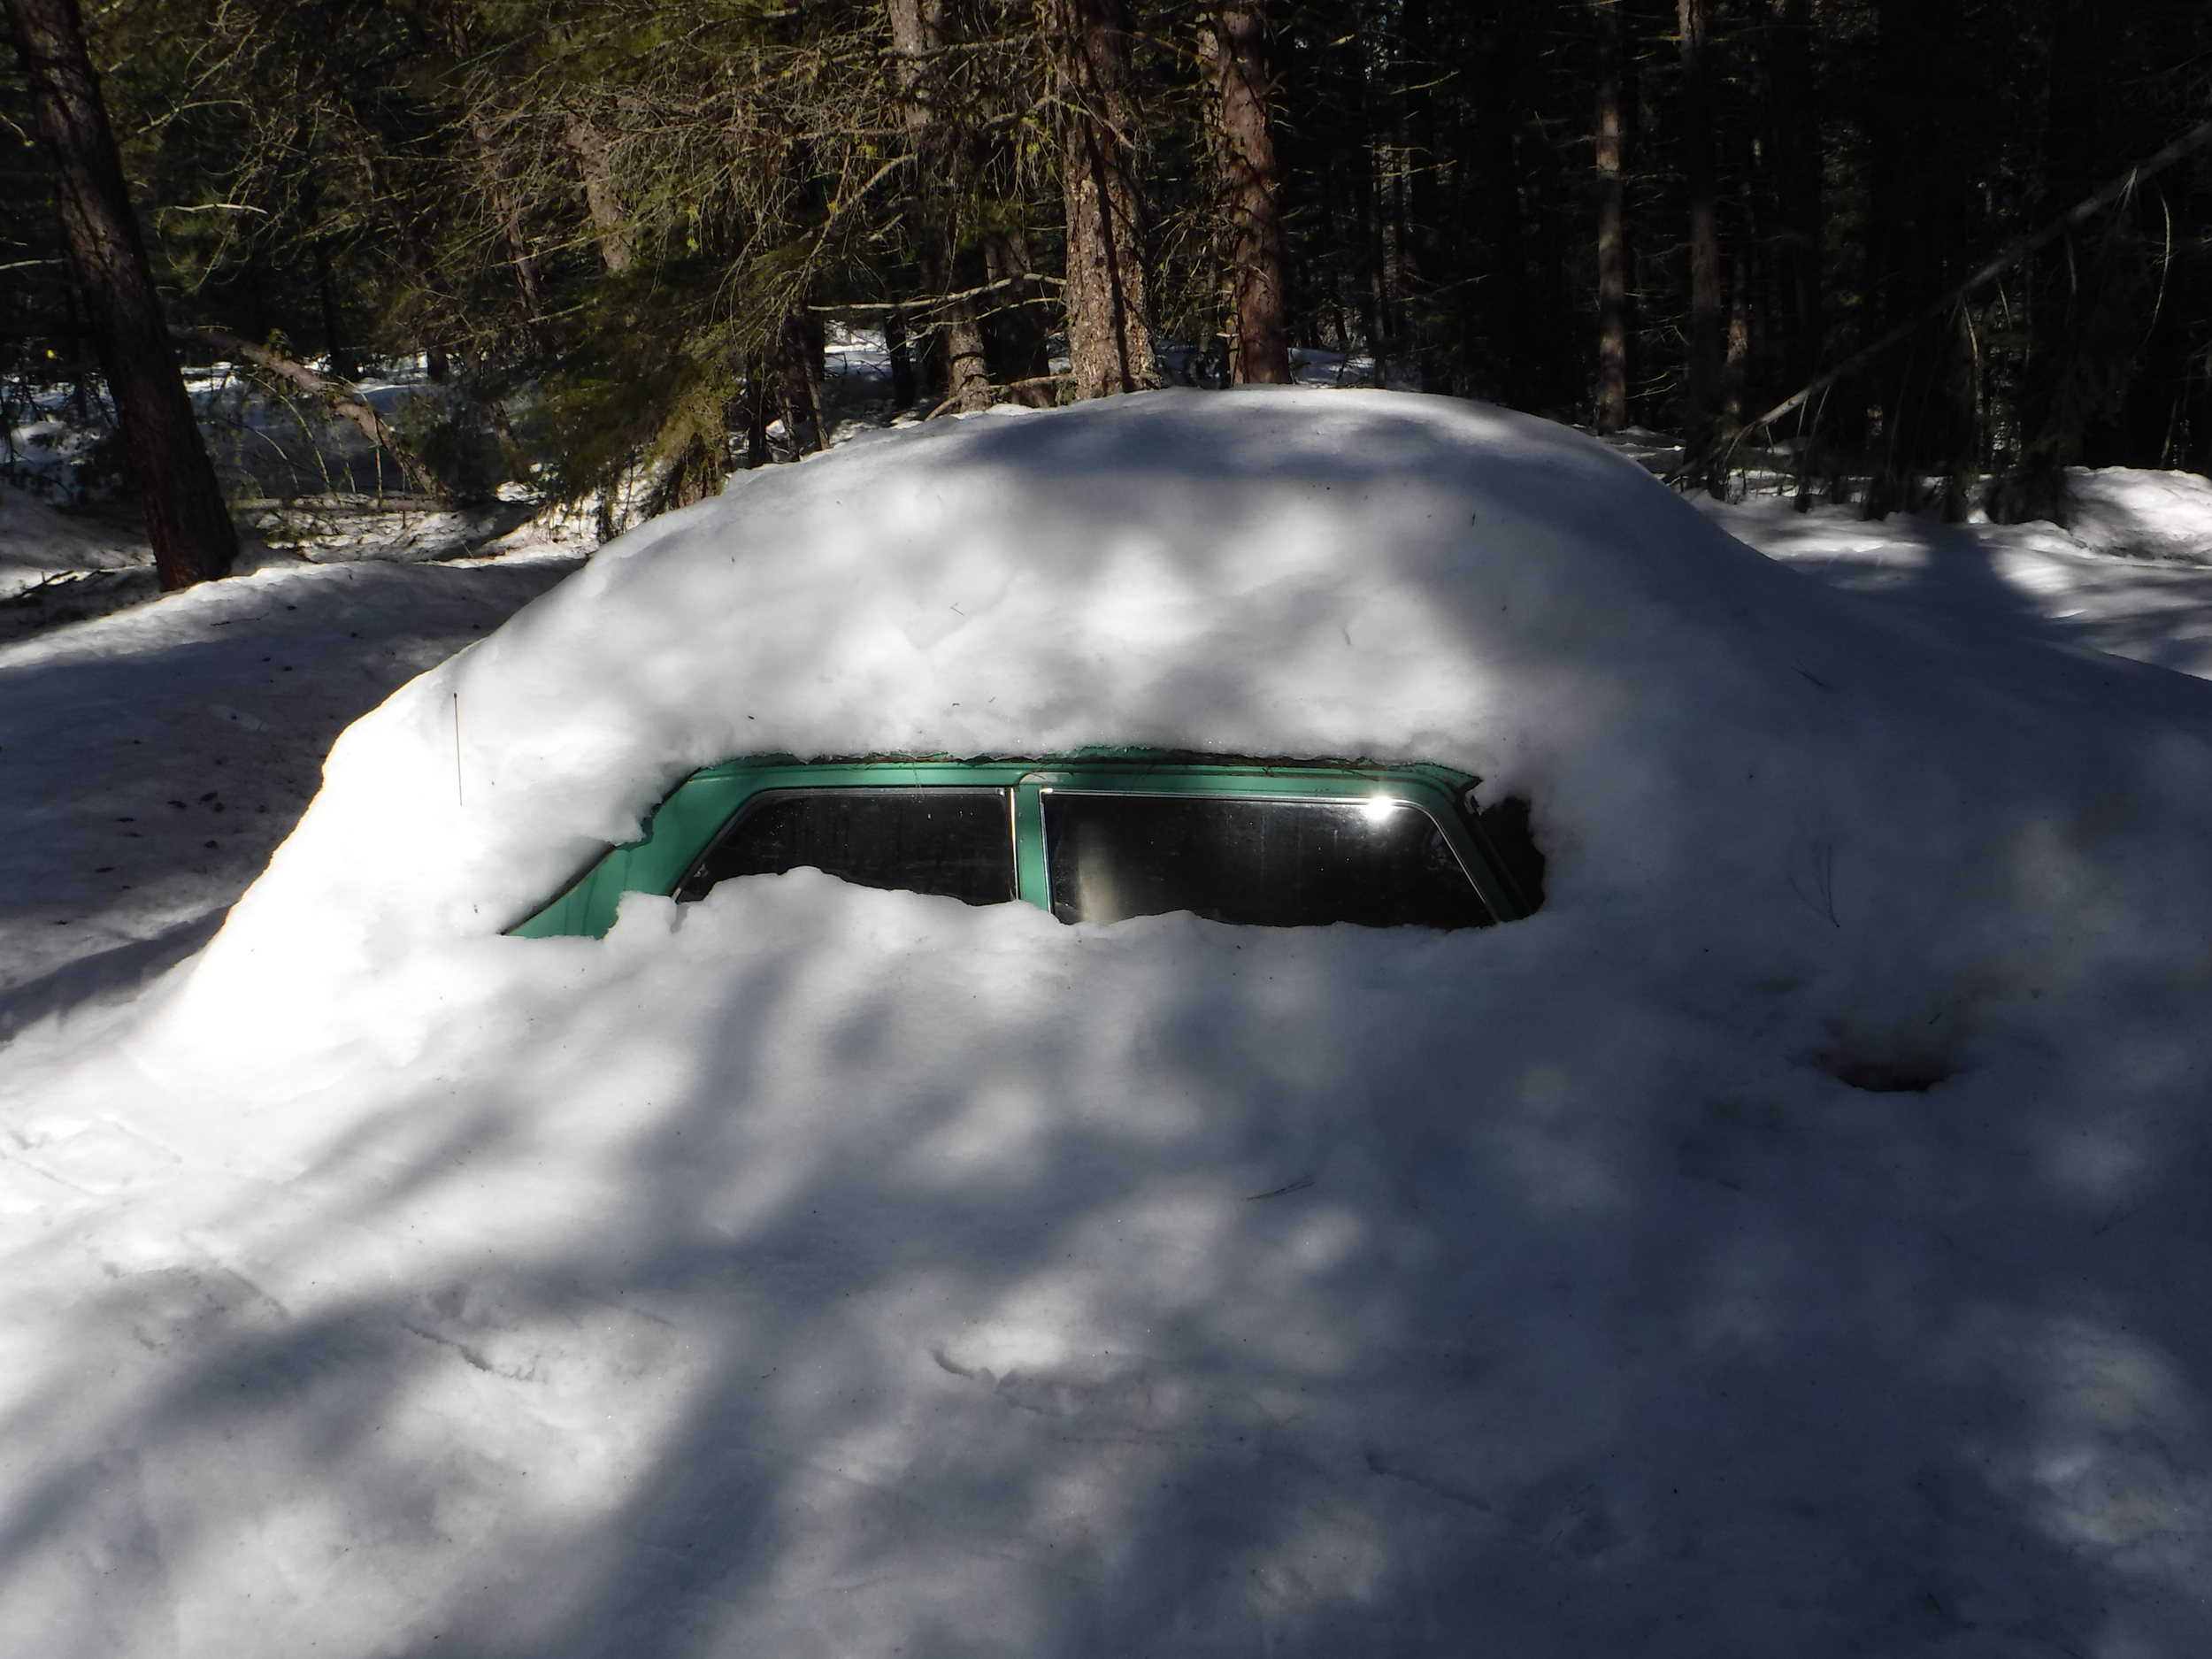 Car left last fall covered in snow. The snow was at least two feet deep.